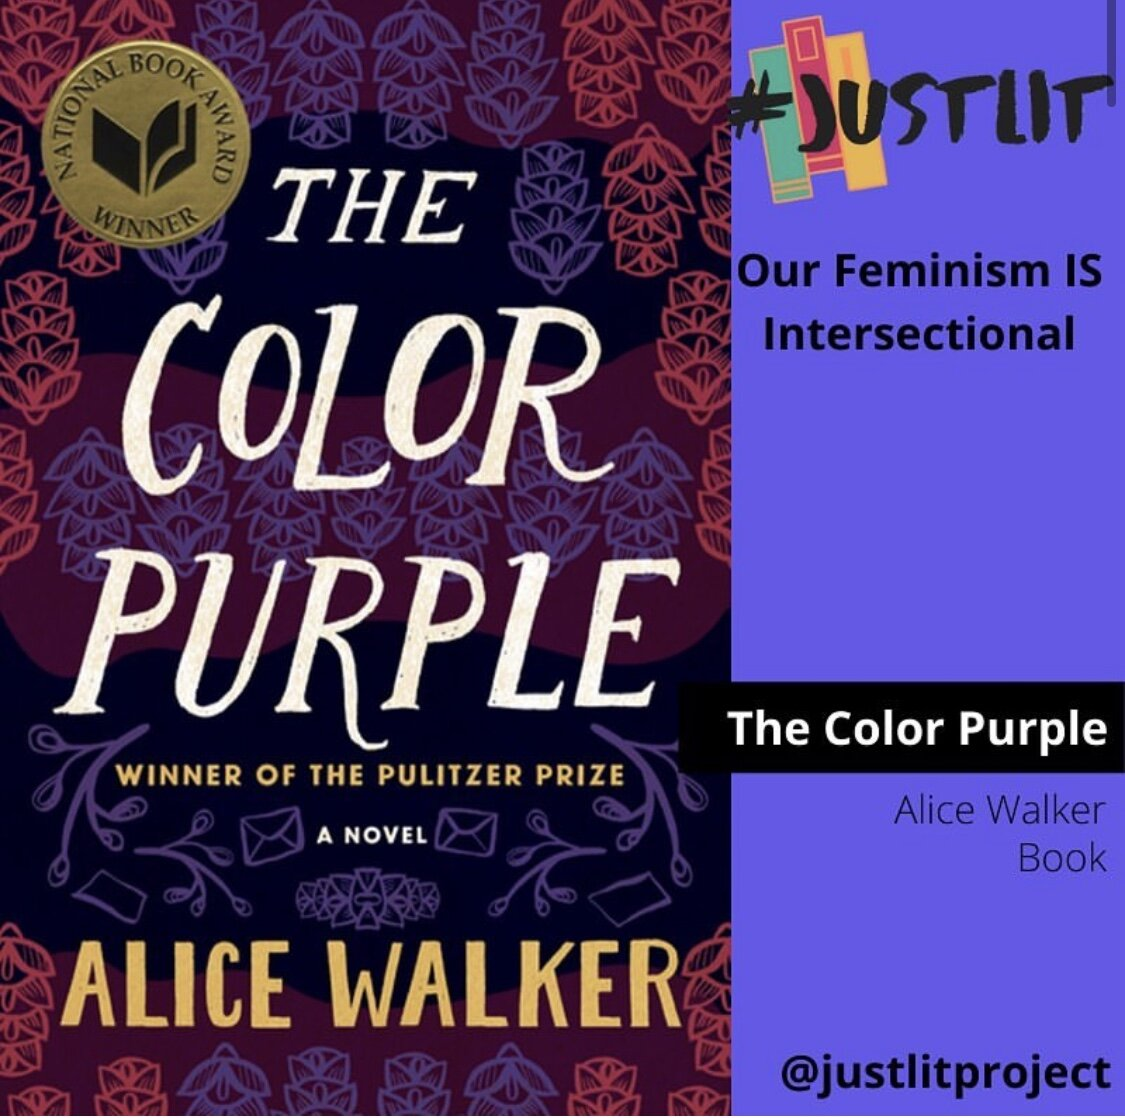 image of the book cover for The Color Purple by Alice Walker from the @justlitproject social media page